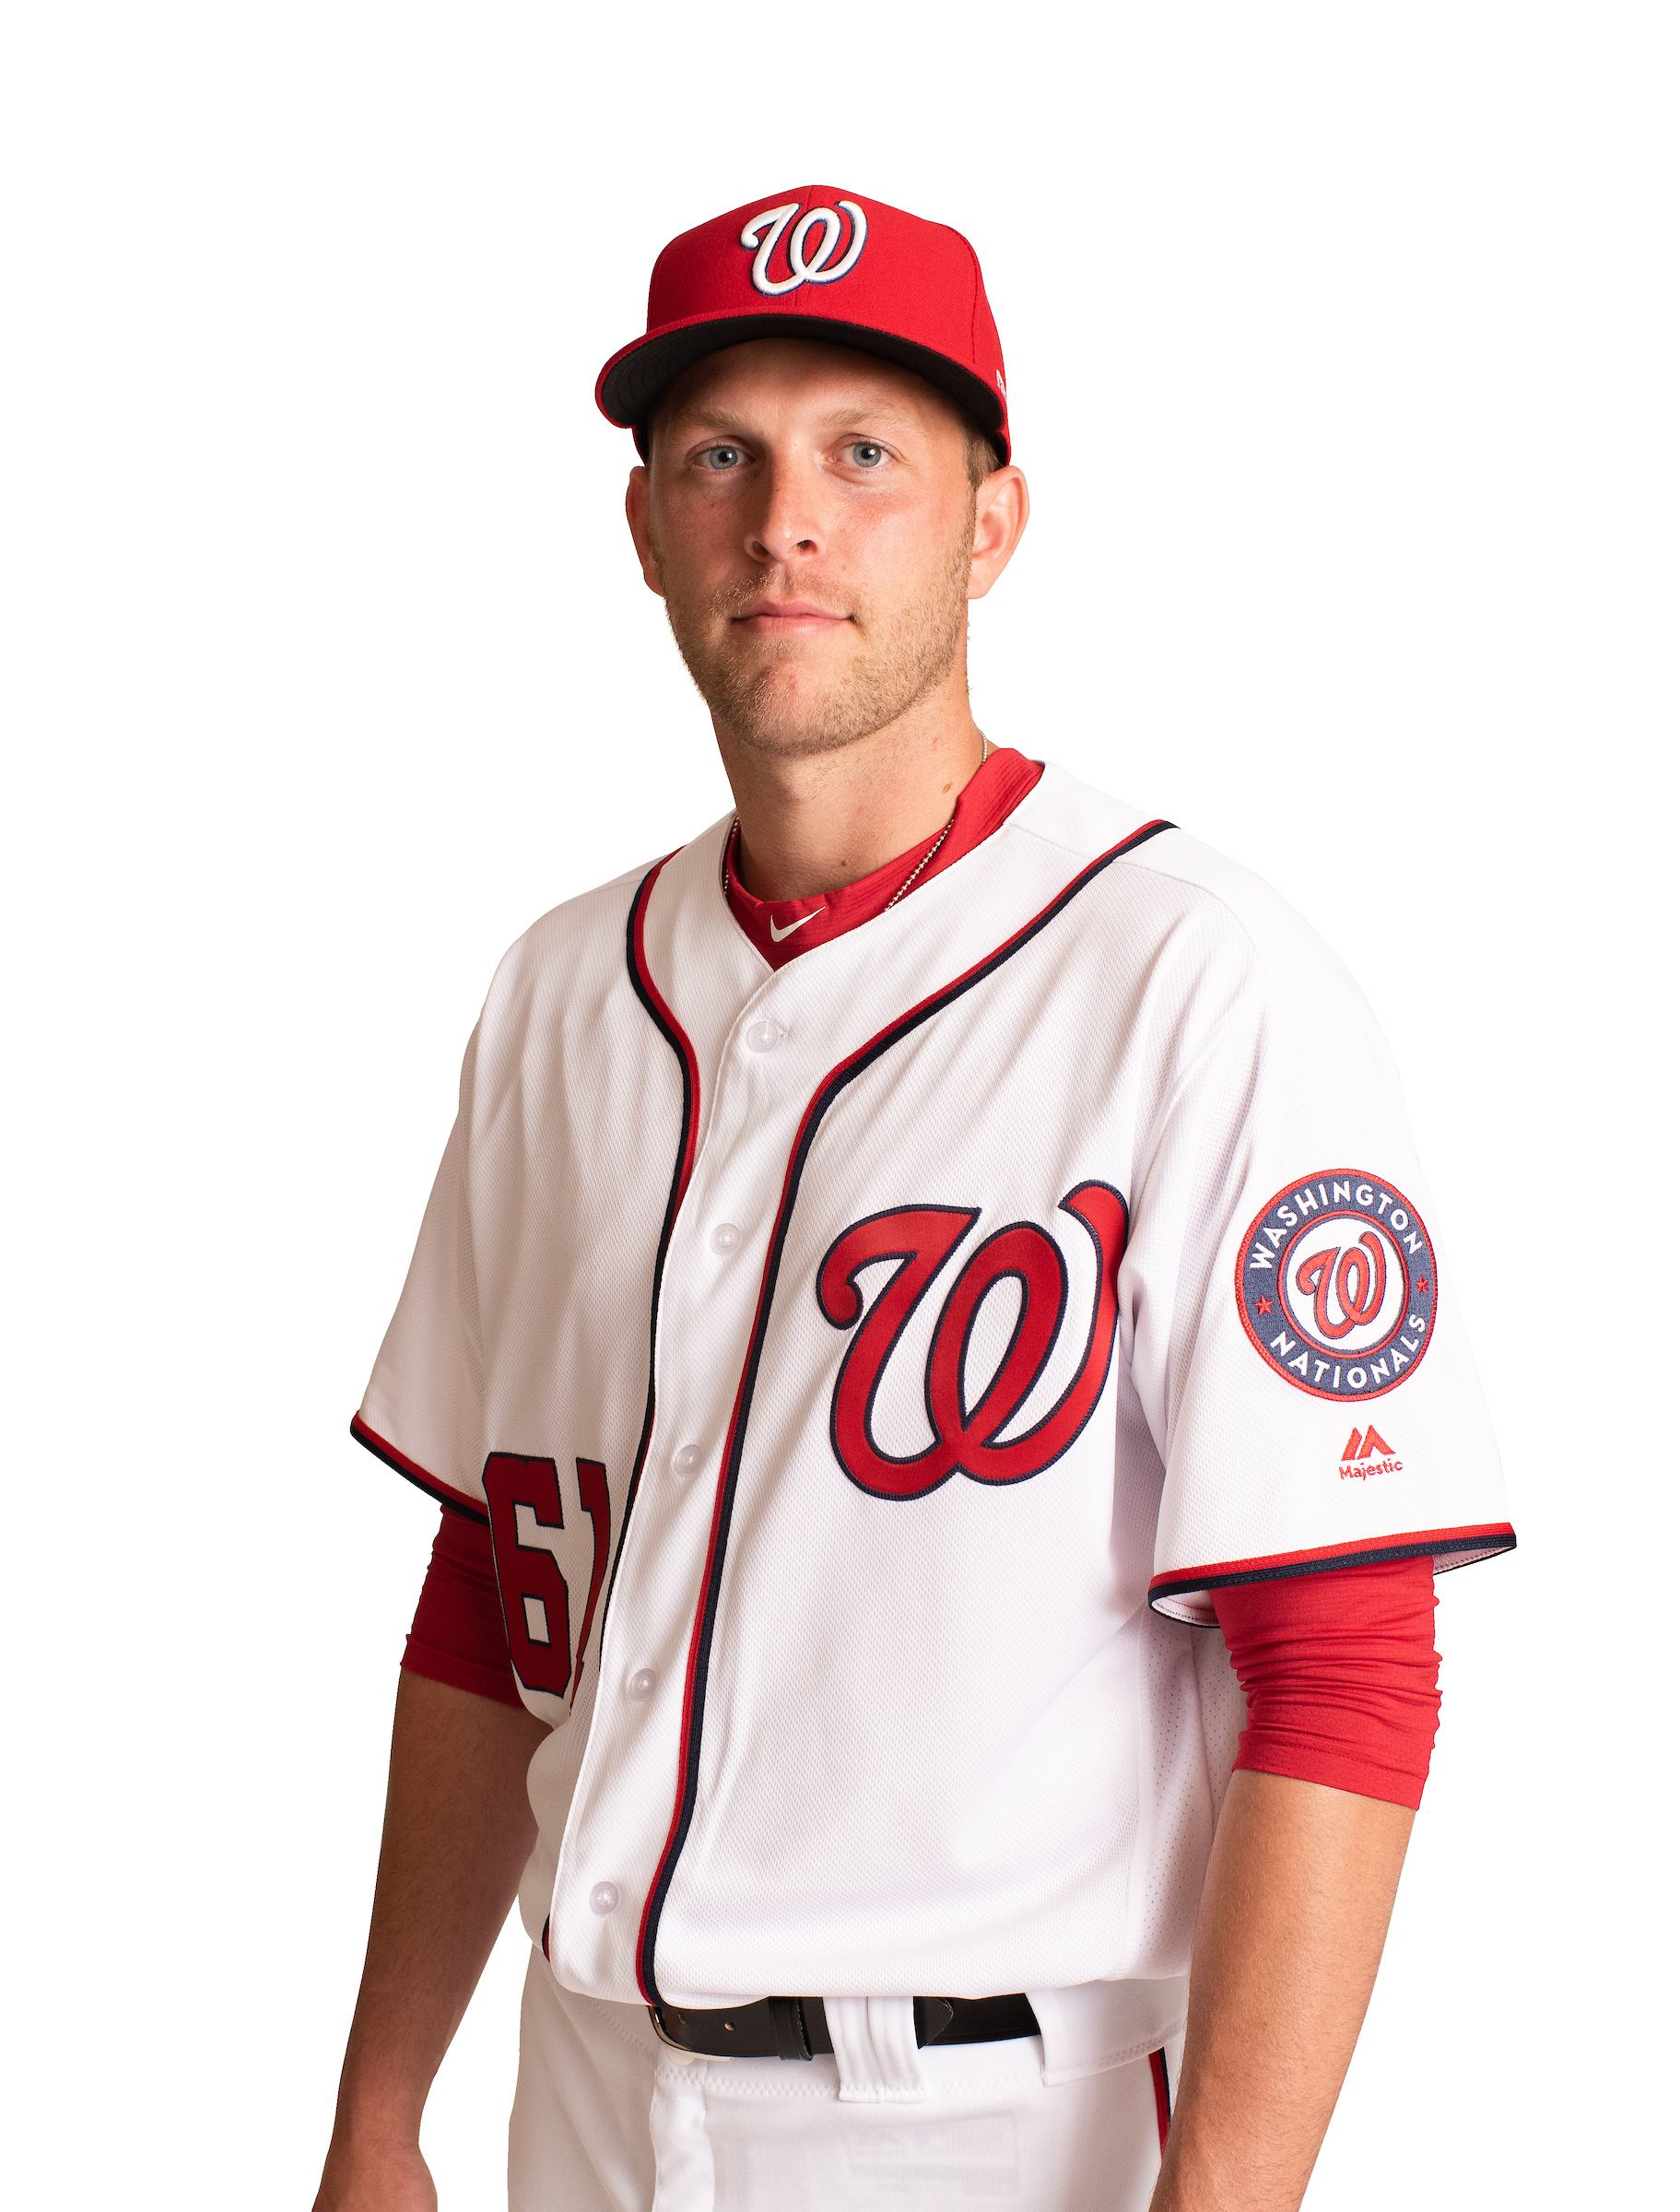 Sag Harbor native Kyle McGowin earned his first major league win with the Washington Nationals.